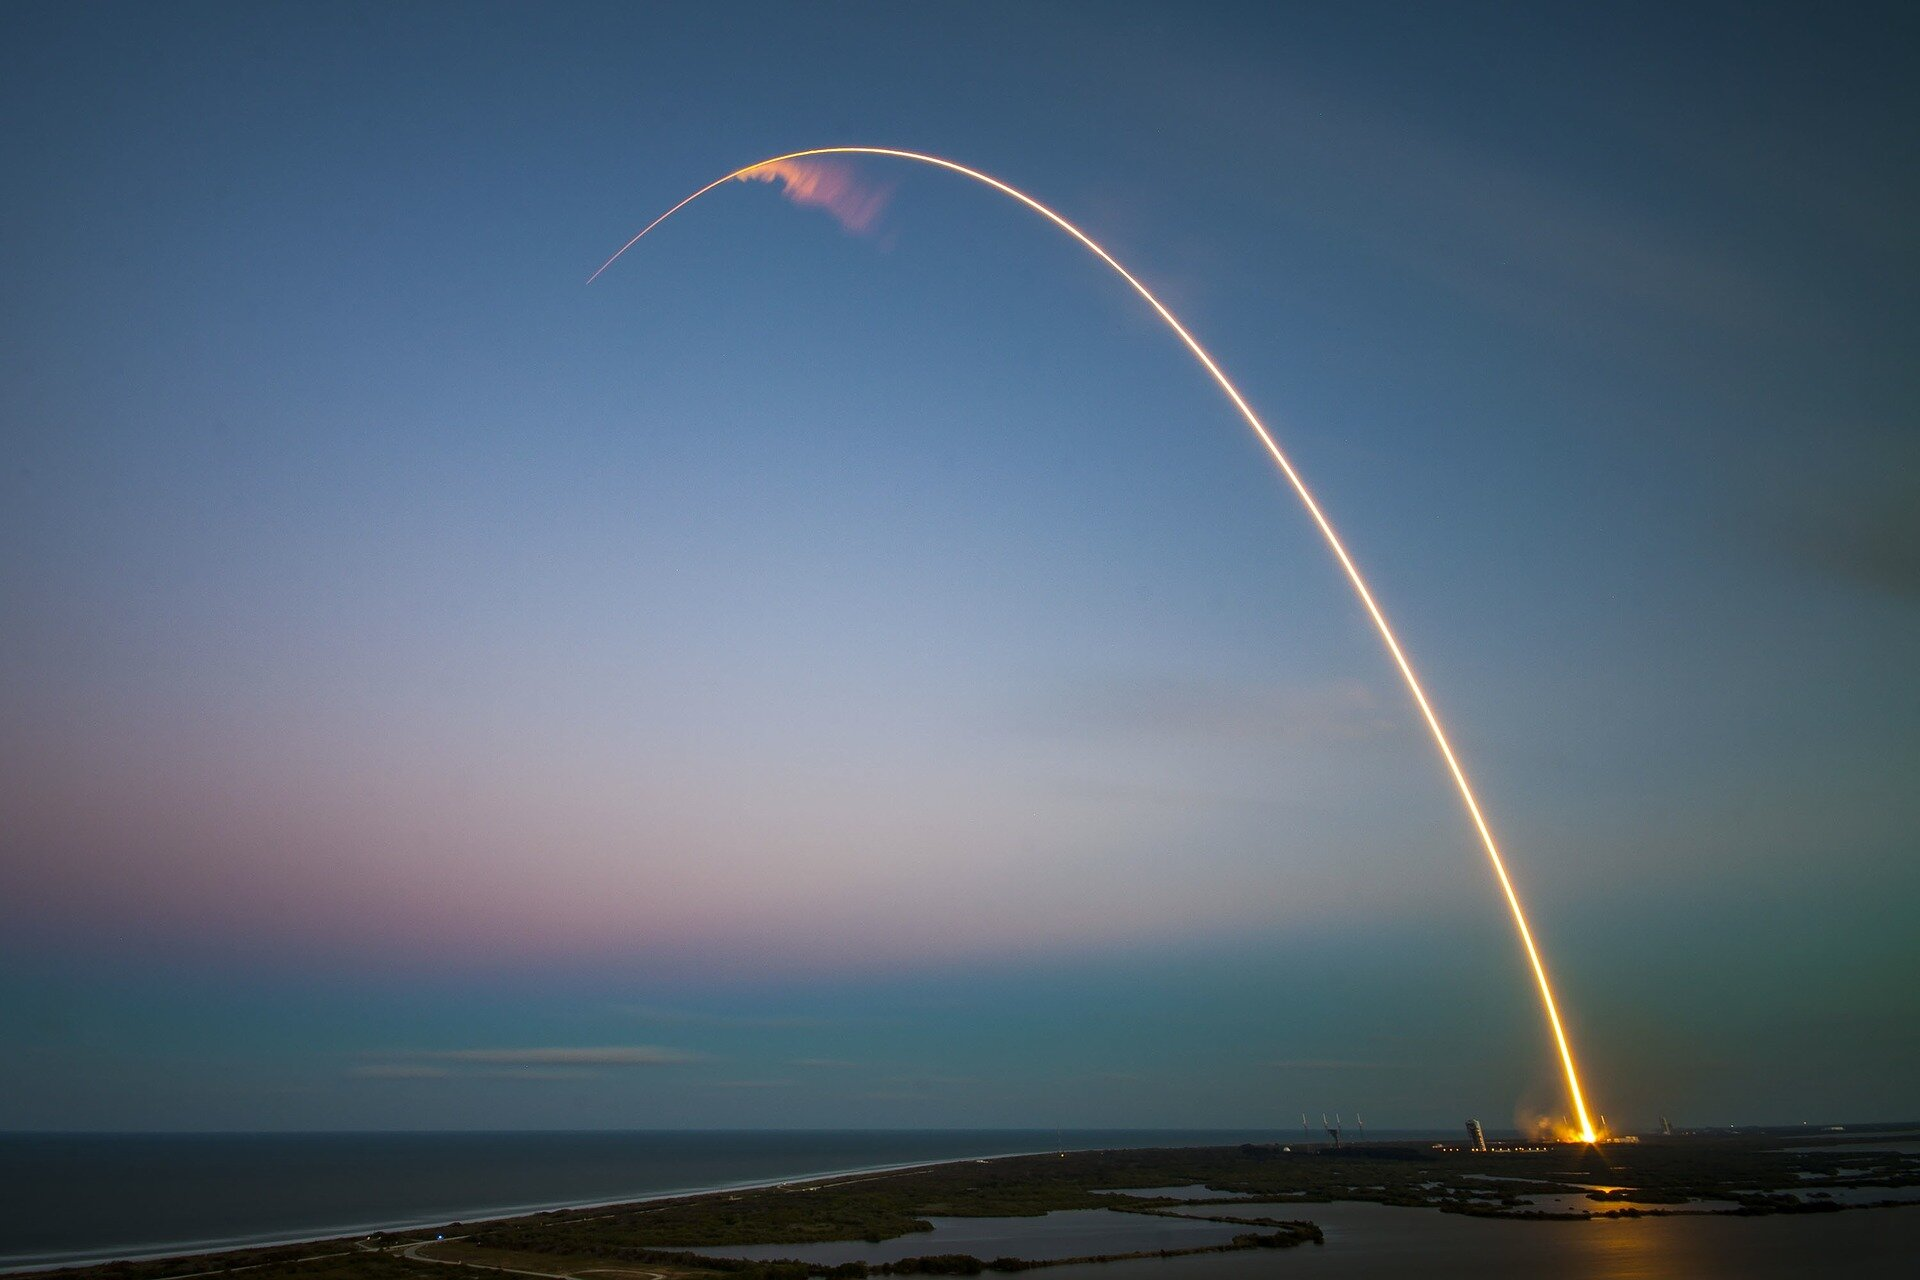 SpaceX starts rolling out Starlink internet, hoping it'll fund Mars flights